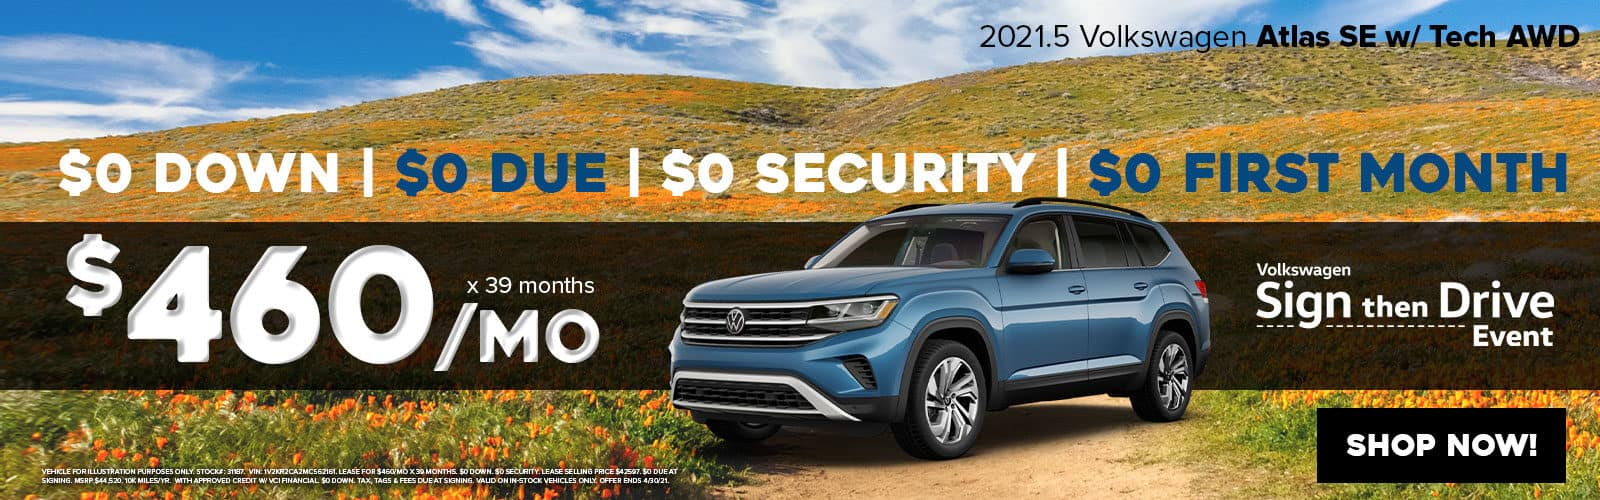 4_21_Wyoming_Valley_VW_Web_Banners_V2-2021-Atlas